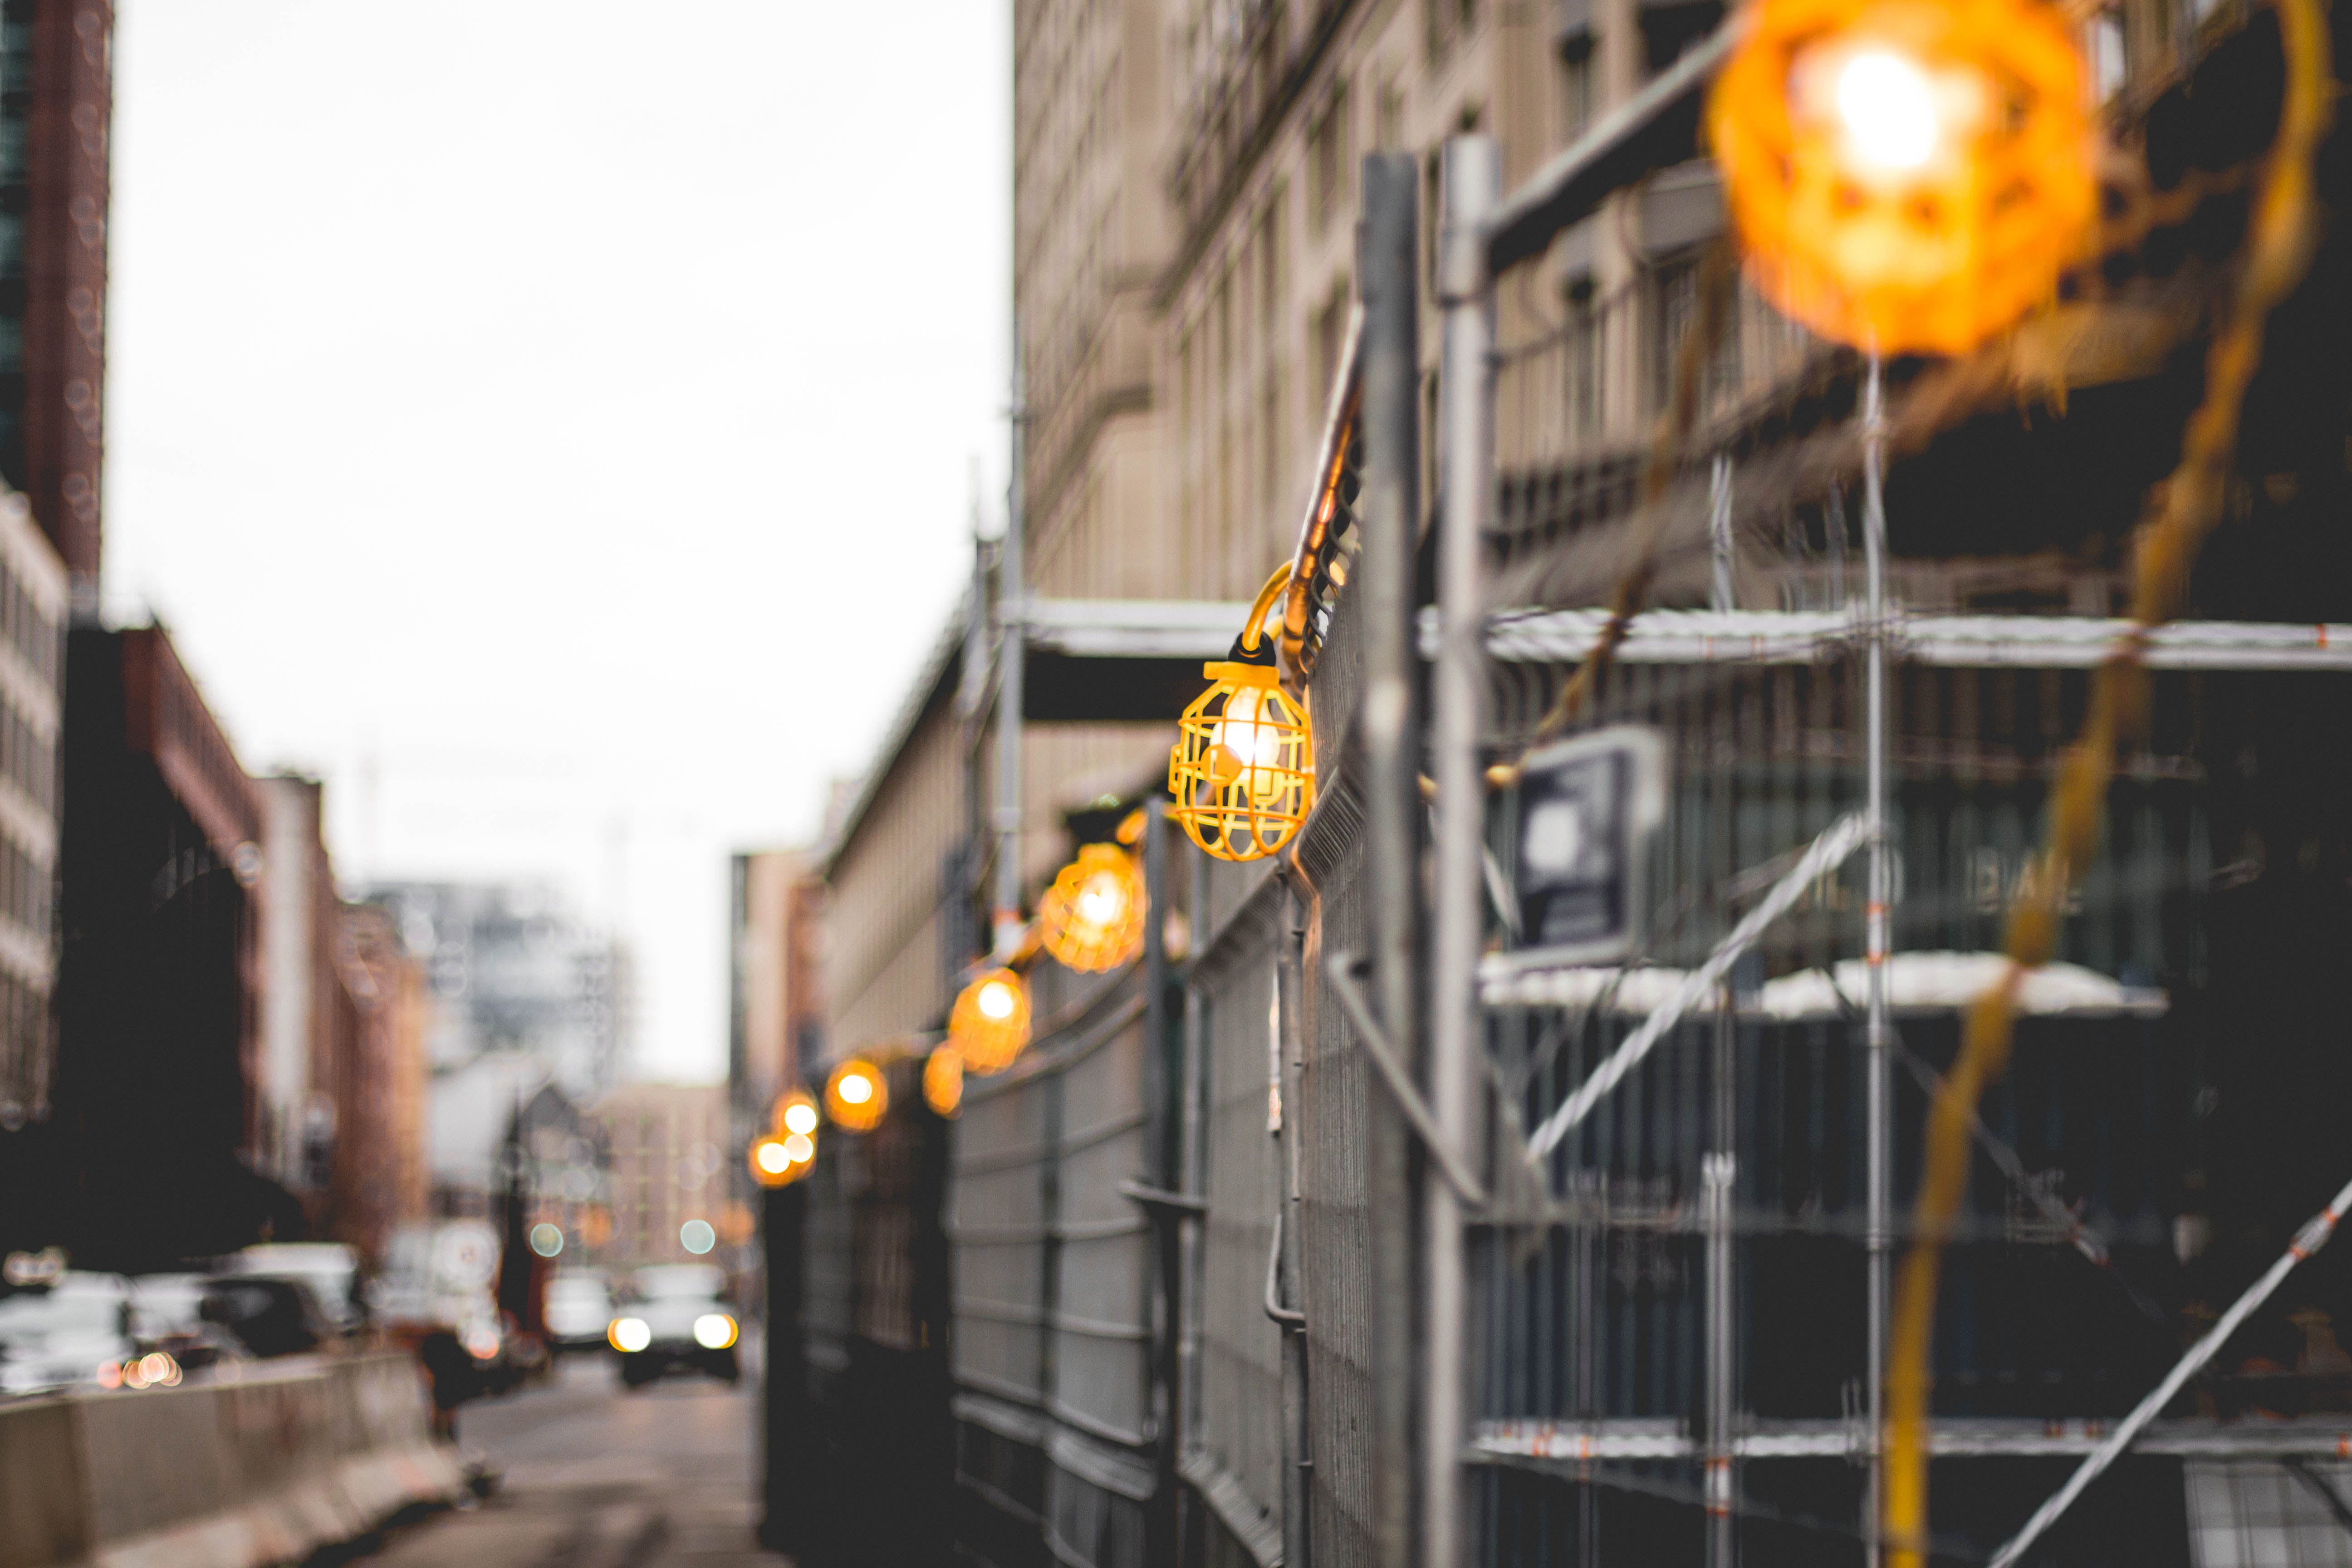 Yellow Work Lamps Turned on